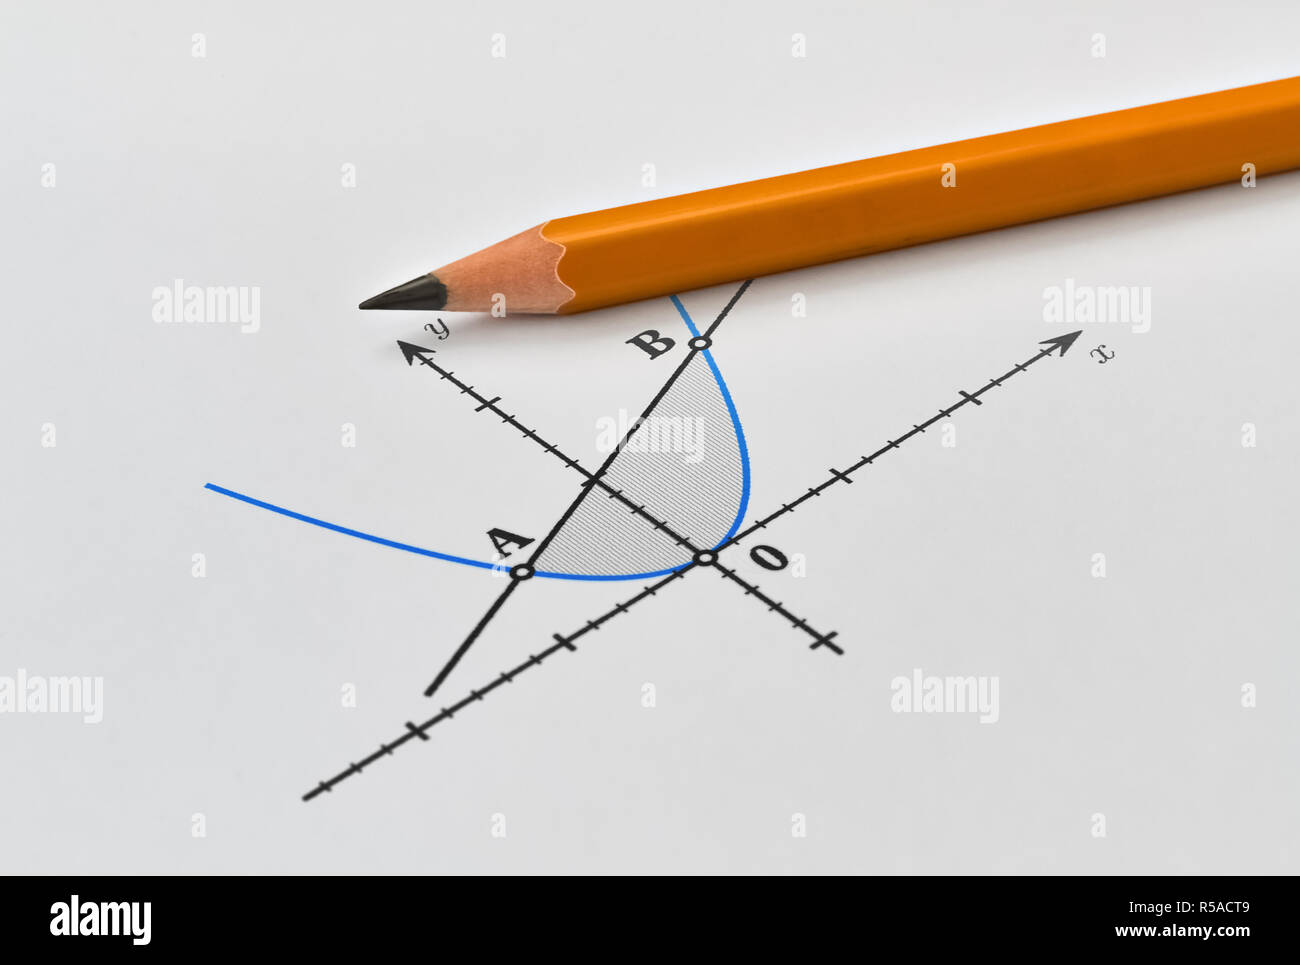 Intersection of two mathematical functions shown in a graphical way - Stock Image